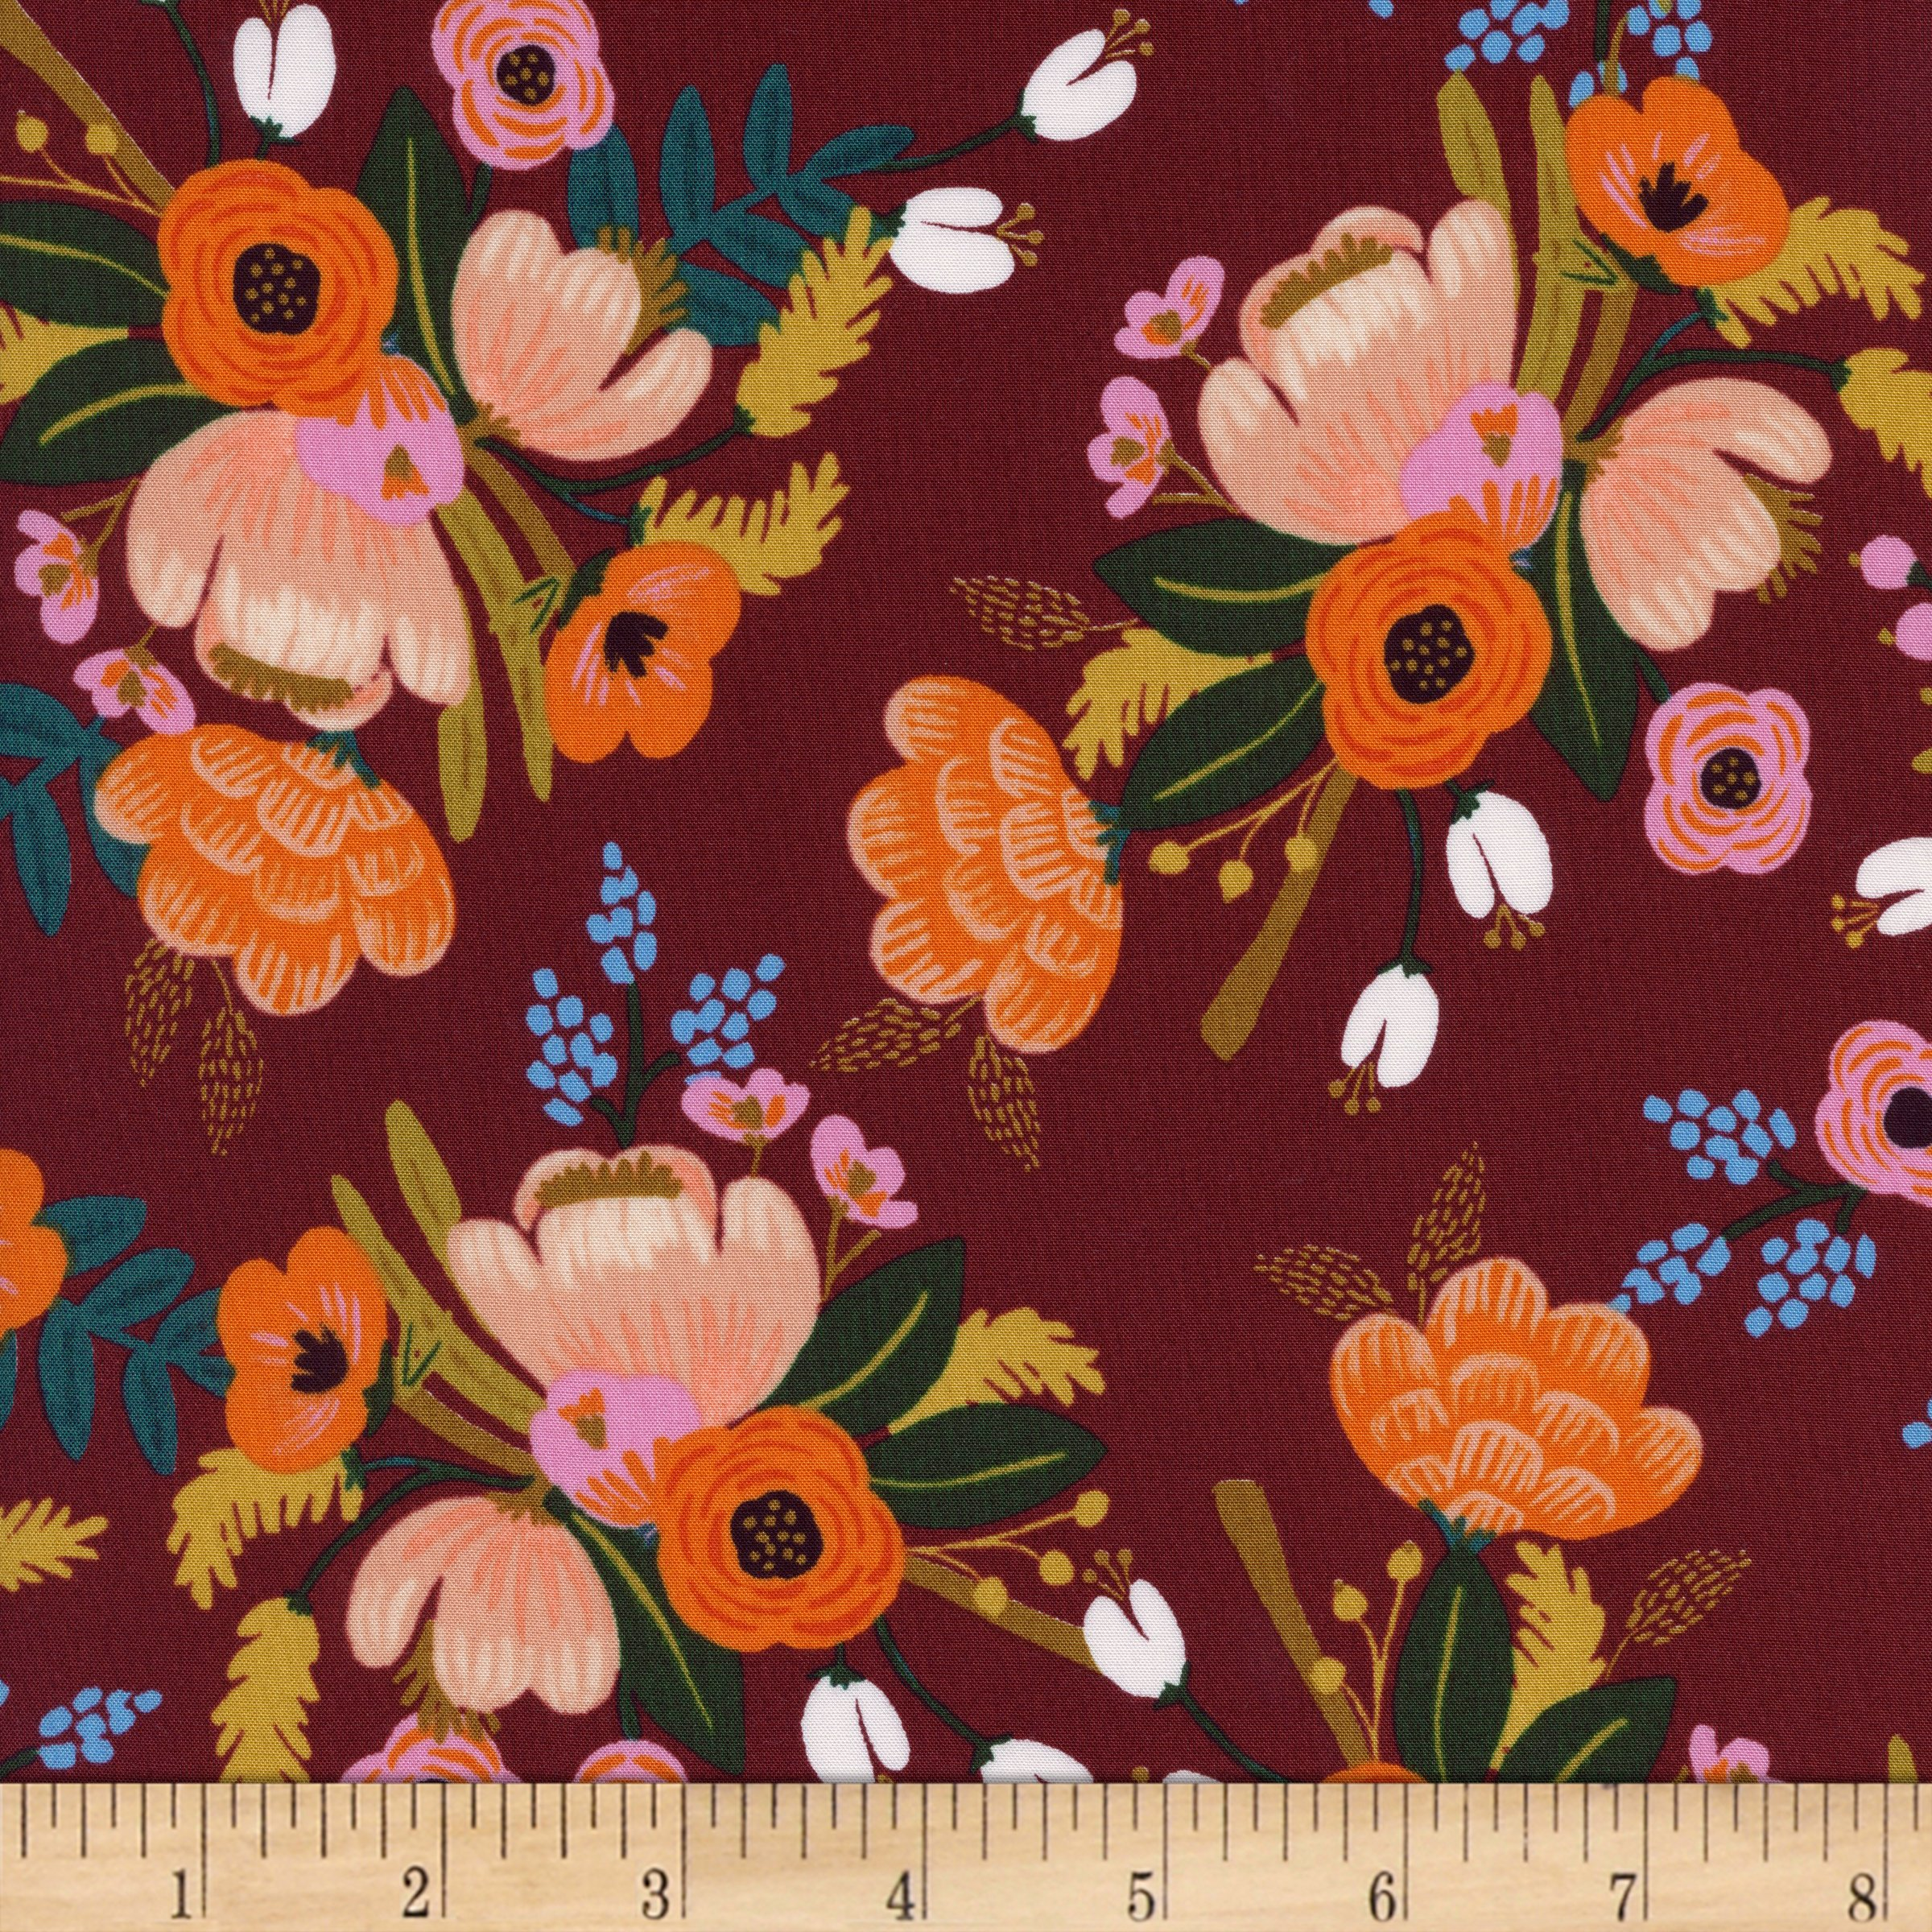 Cotton + Steel Burgundy Rifle Paper Co Rayon Challis Amalfi Lively Floral Fabric by The Yard